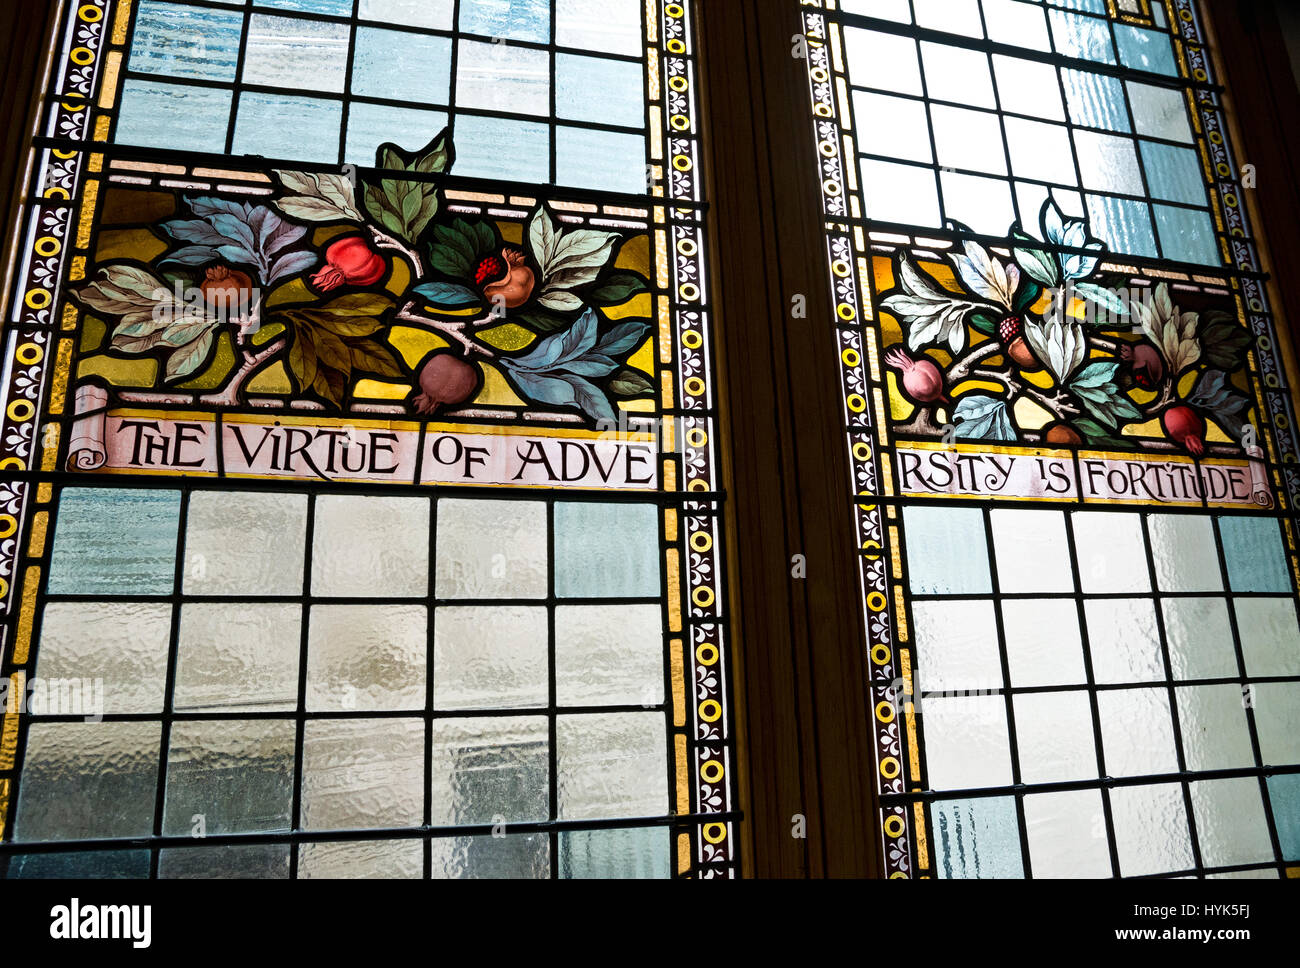 'The Virtue of Adversity is Fortitude' quote on stained glass window in Victoria BC provincial parliament - Stock Image